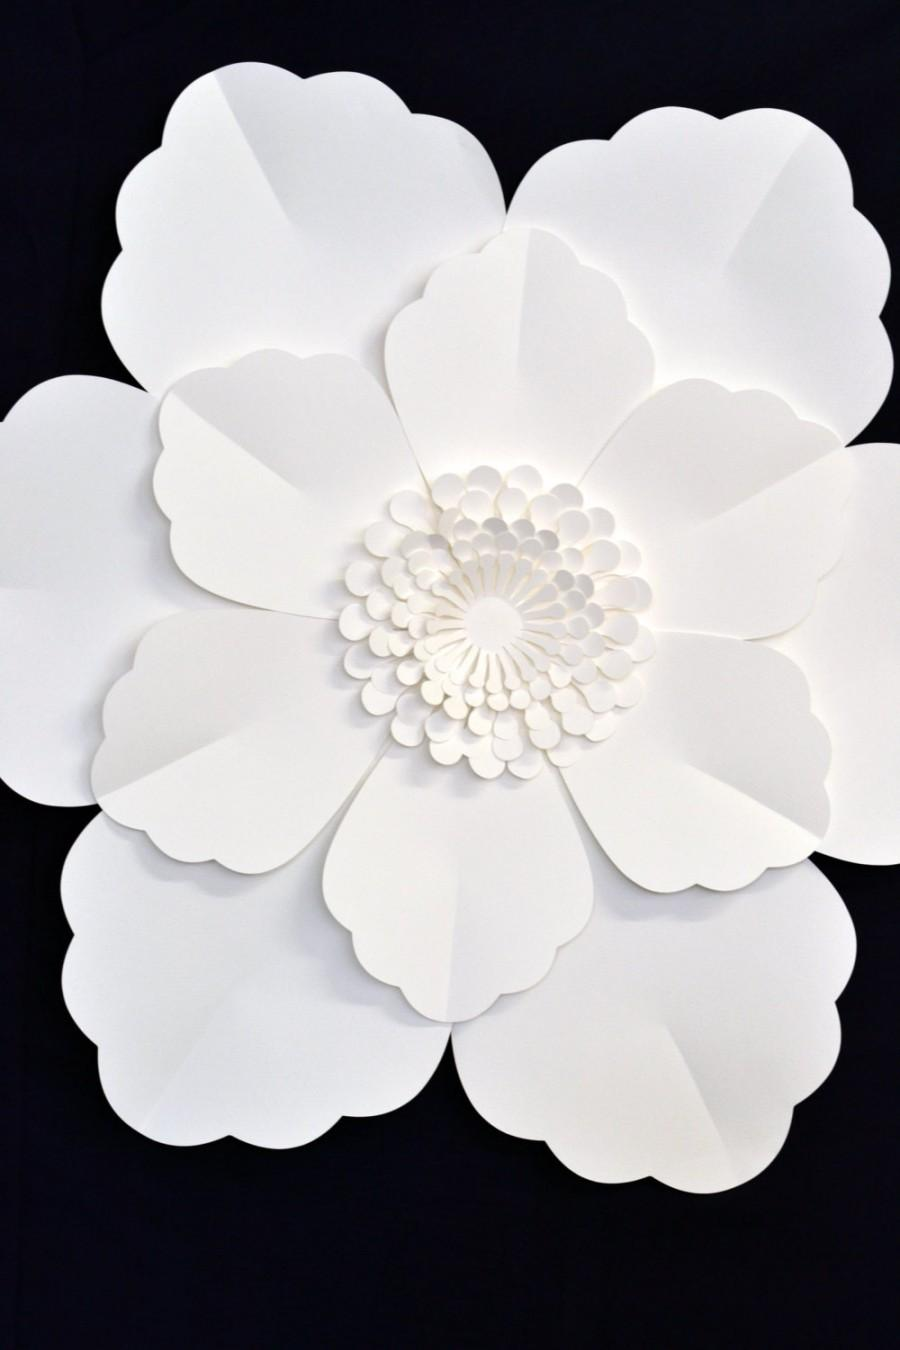 Giant 2 ft paper flower for wedding decoration 2451962 weddbook giant 2 ft paper flower for wedding decoration mightylinksfo